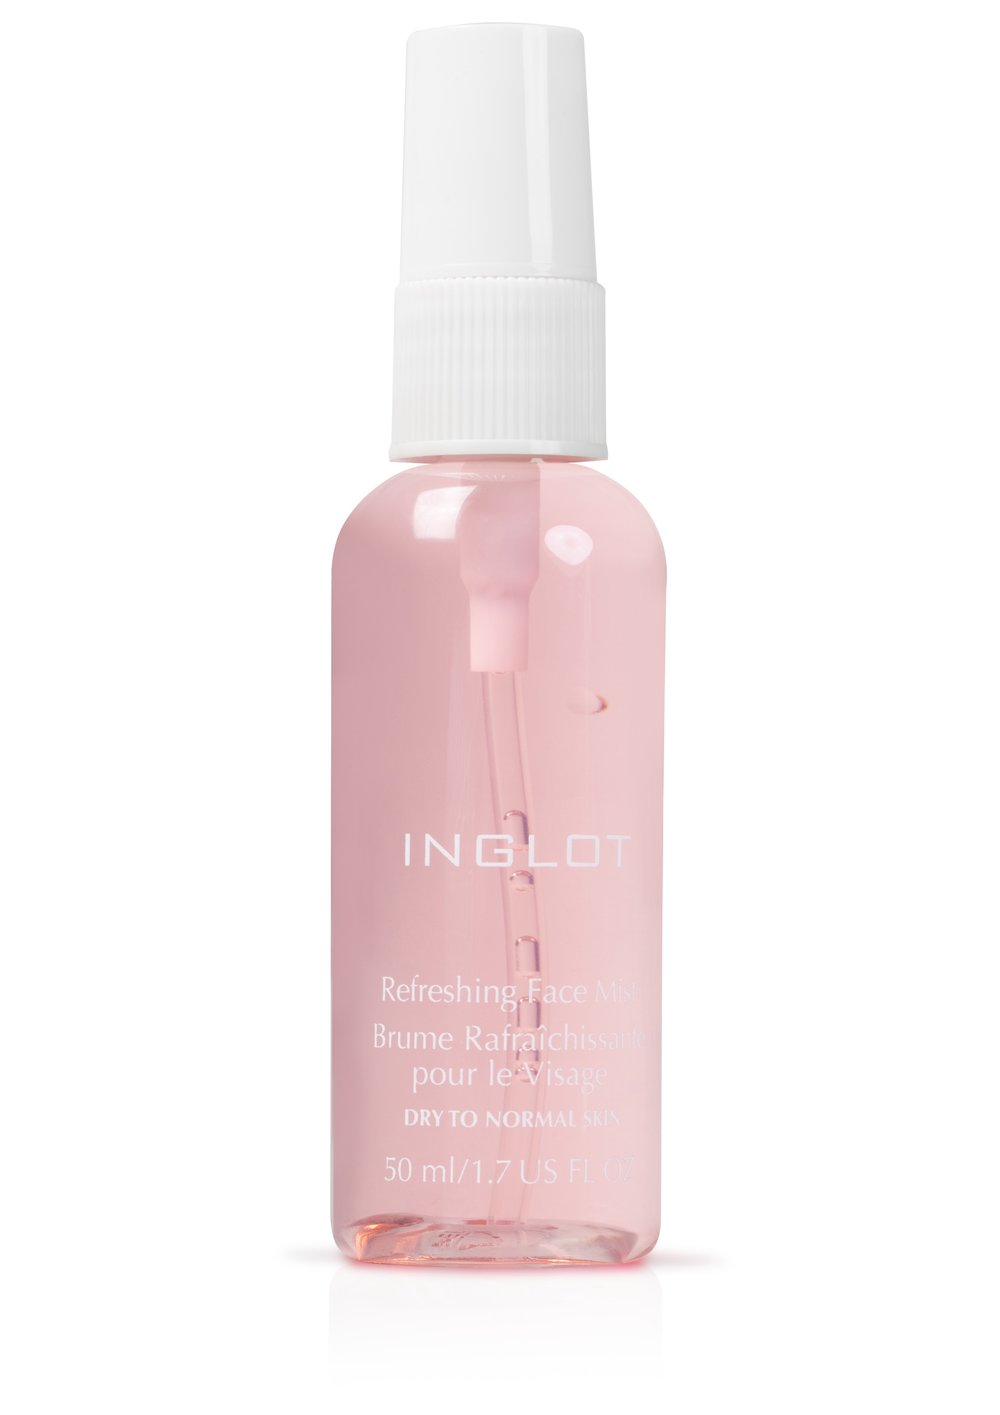 INGLOT Refreshing Face Mist - Dry To Normal.jpg